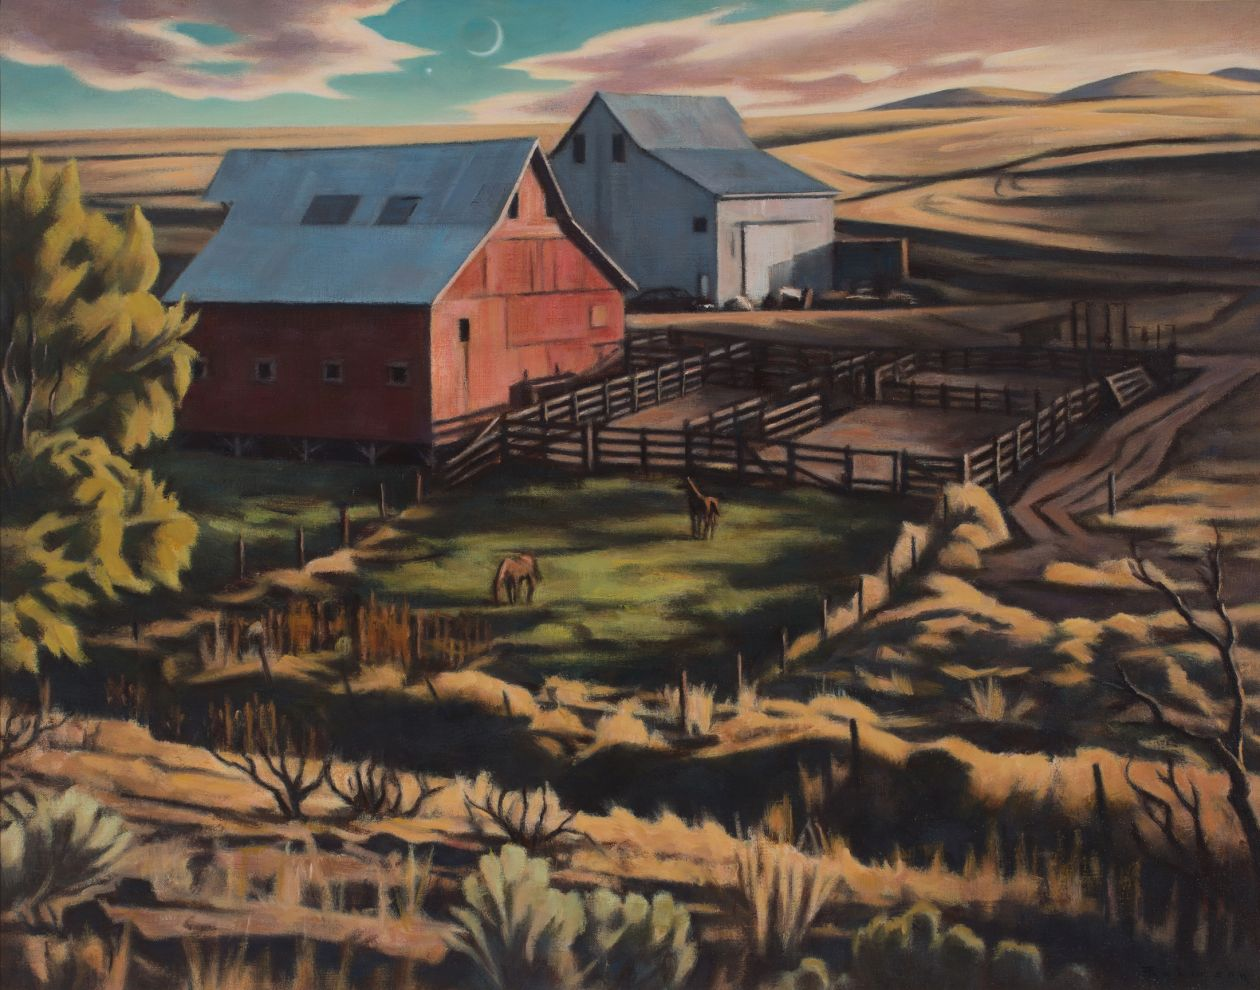 Barns at Twilight (2019) by Daniel Robinson